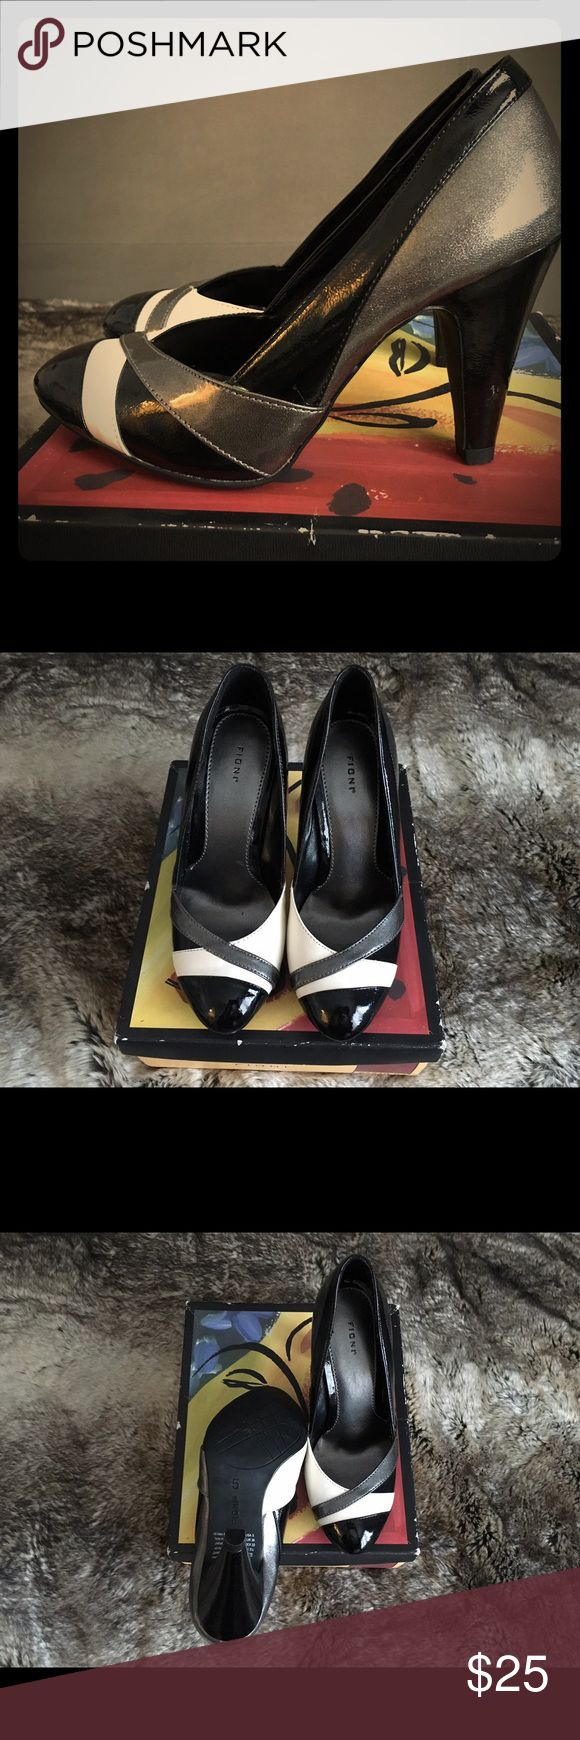 """Women's Fioni 'Johnny' Colorblock High Heel Pumps Brand new with box Fioni 'Johnny' high heel pumps pairs well with everything in its neutral colors of metallic gunmetal, white, and black. 3-1/2"""" high heels. FIONI Clothing Shoes Heels"""